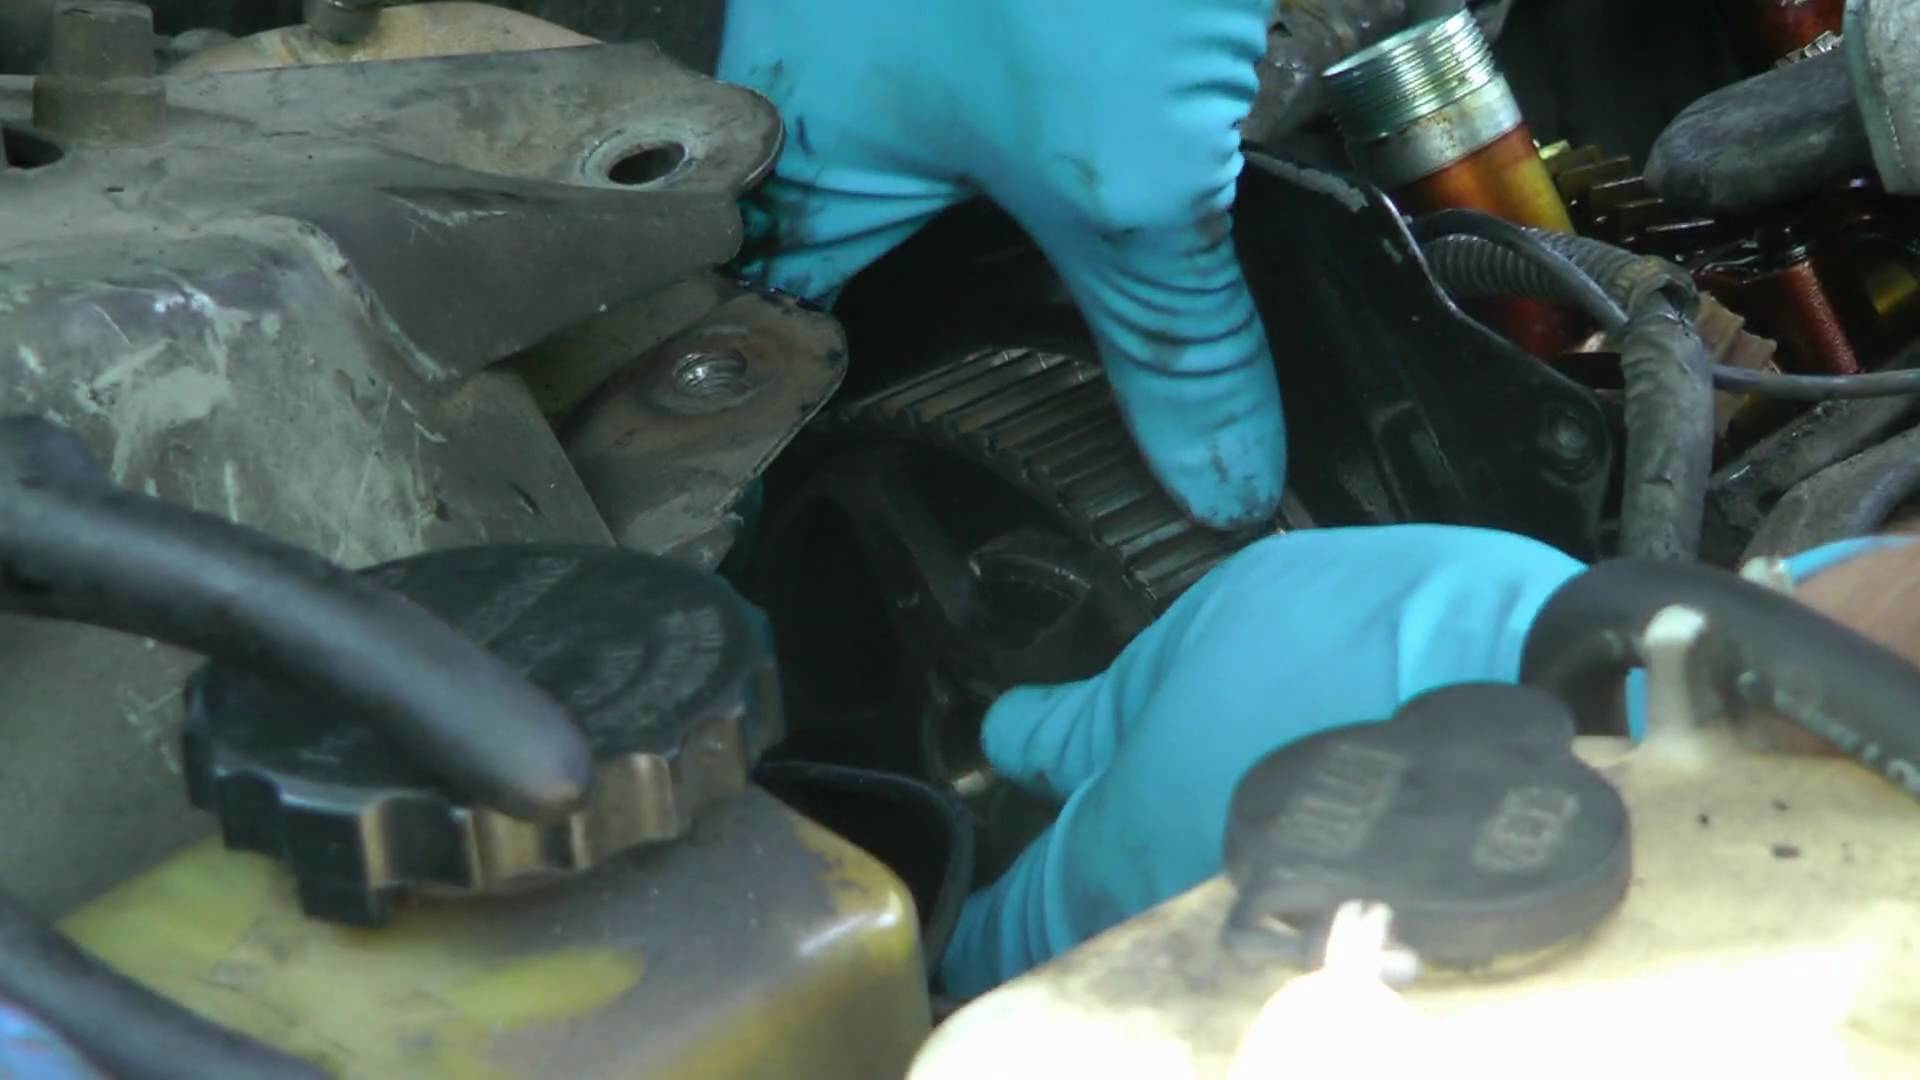 How To Fix Engine Oil Leaks 2